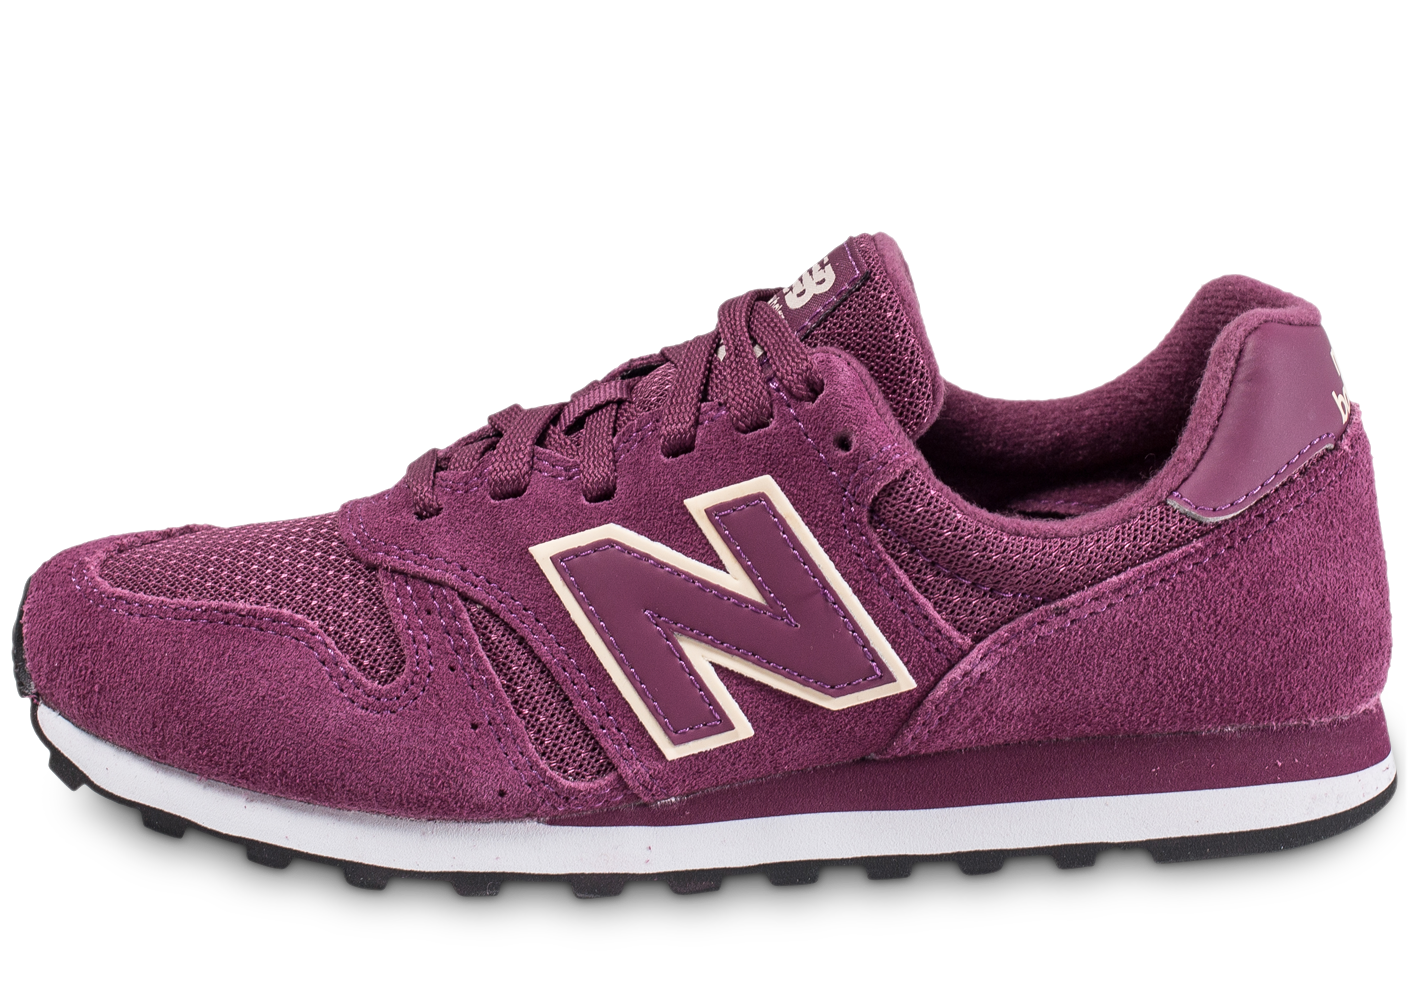 New Balance Wl373 Pur Bordeaux Baskets/Running Femme